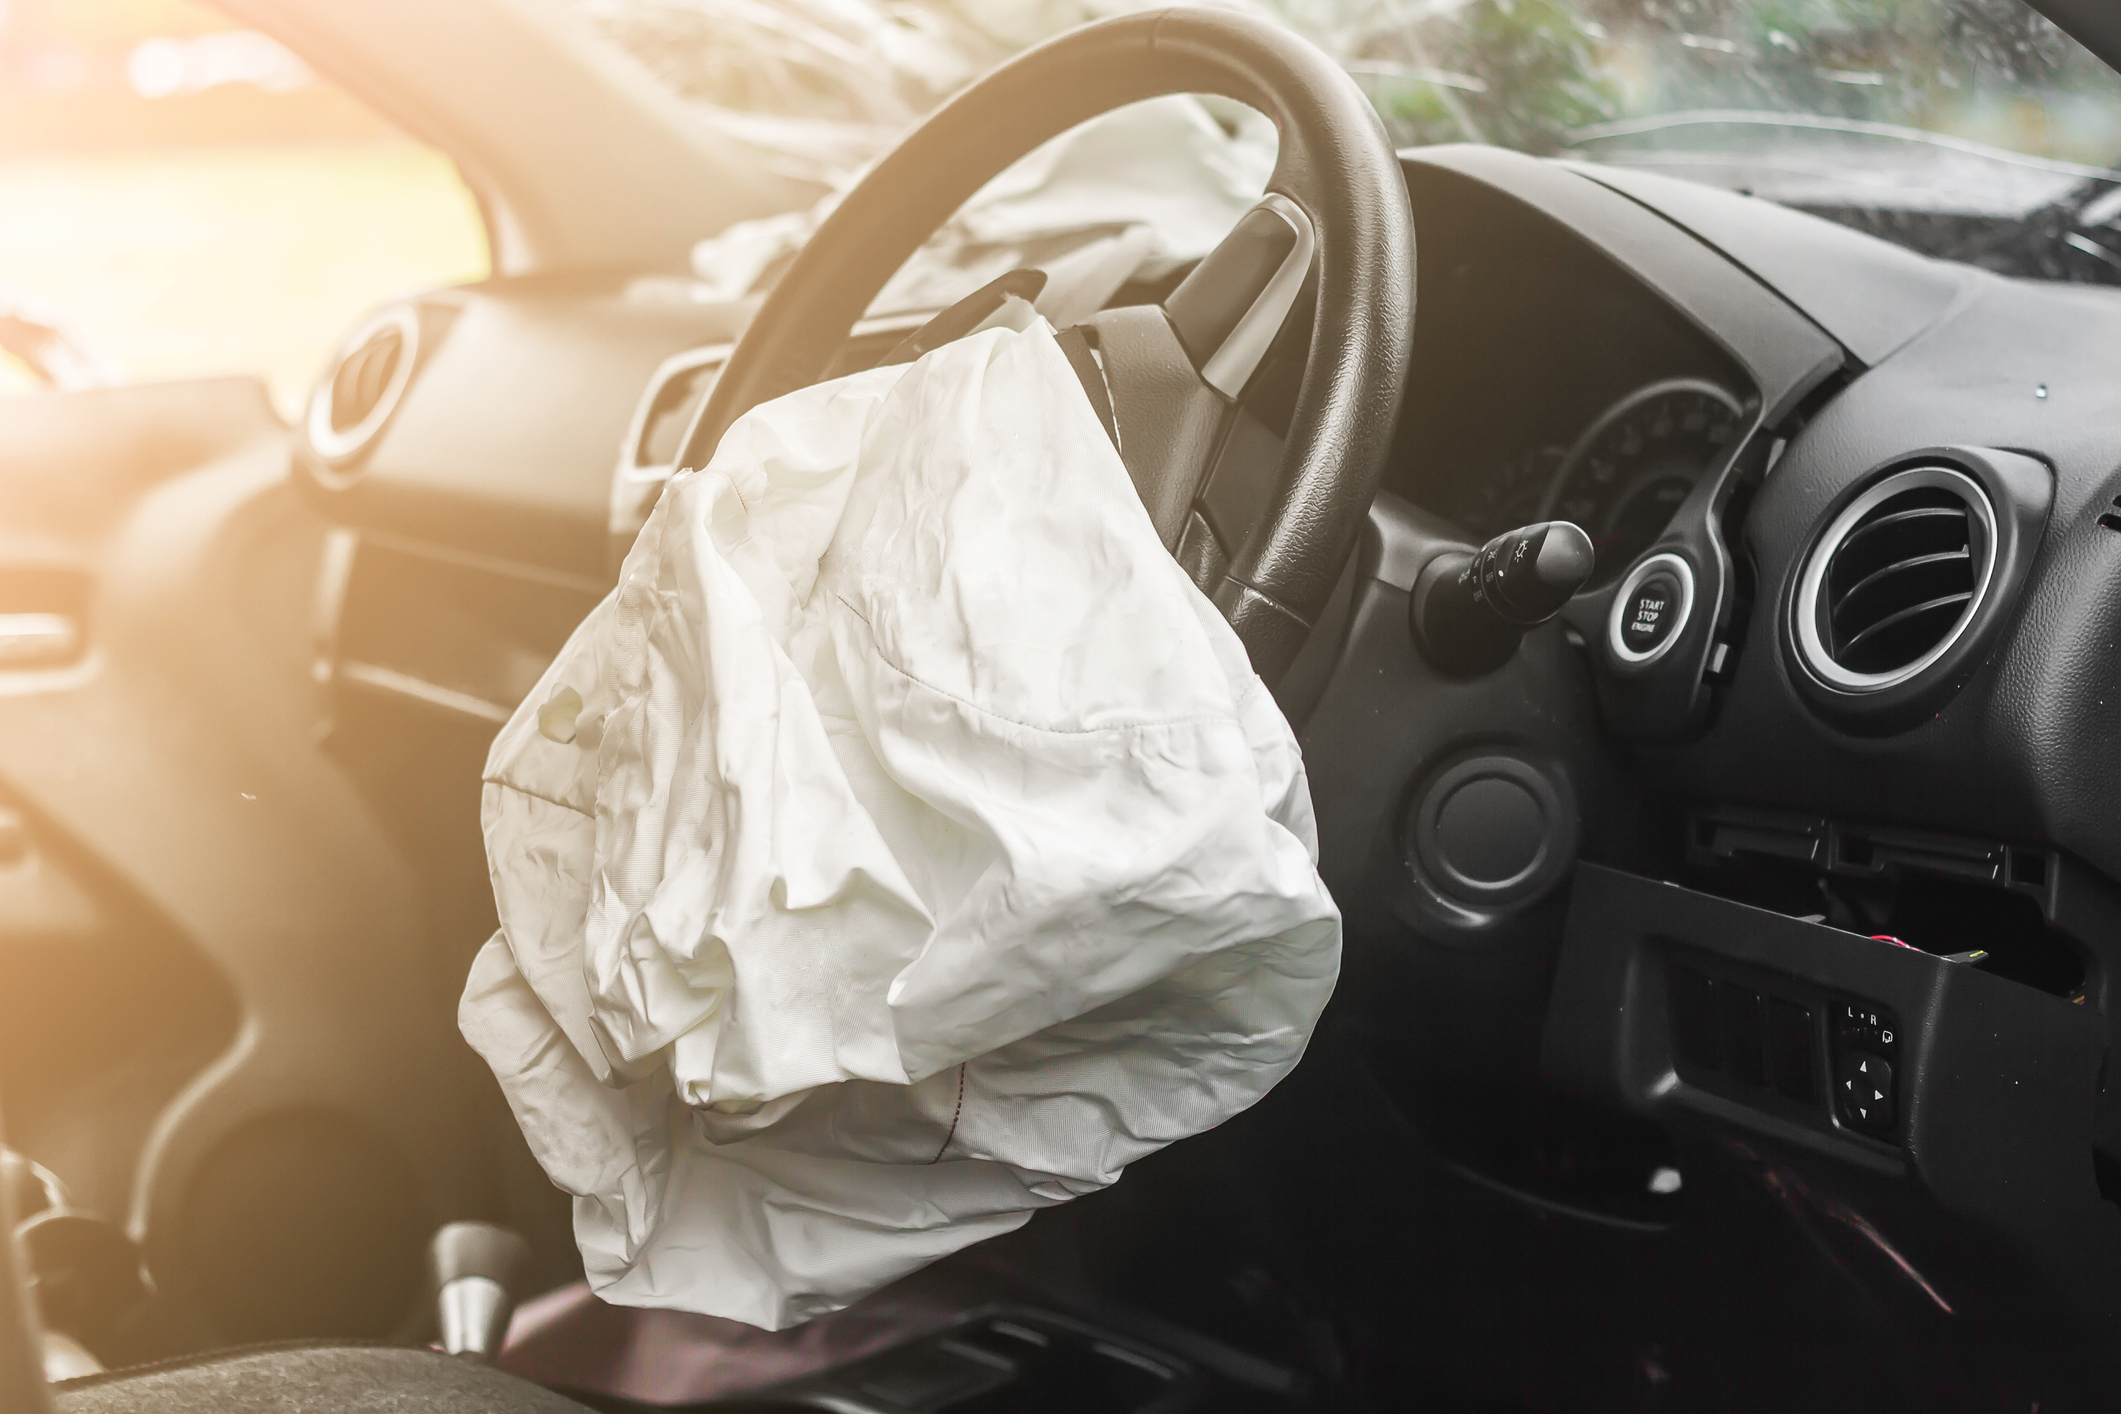 - While the car may be damaged only minimally, the occupants can suffer considerable soft tissue injury, .